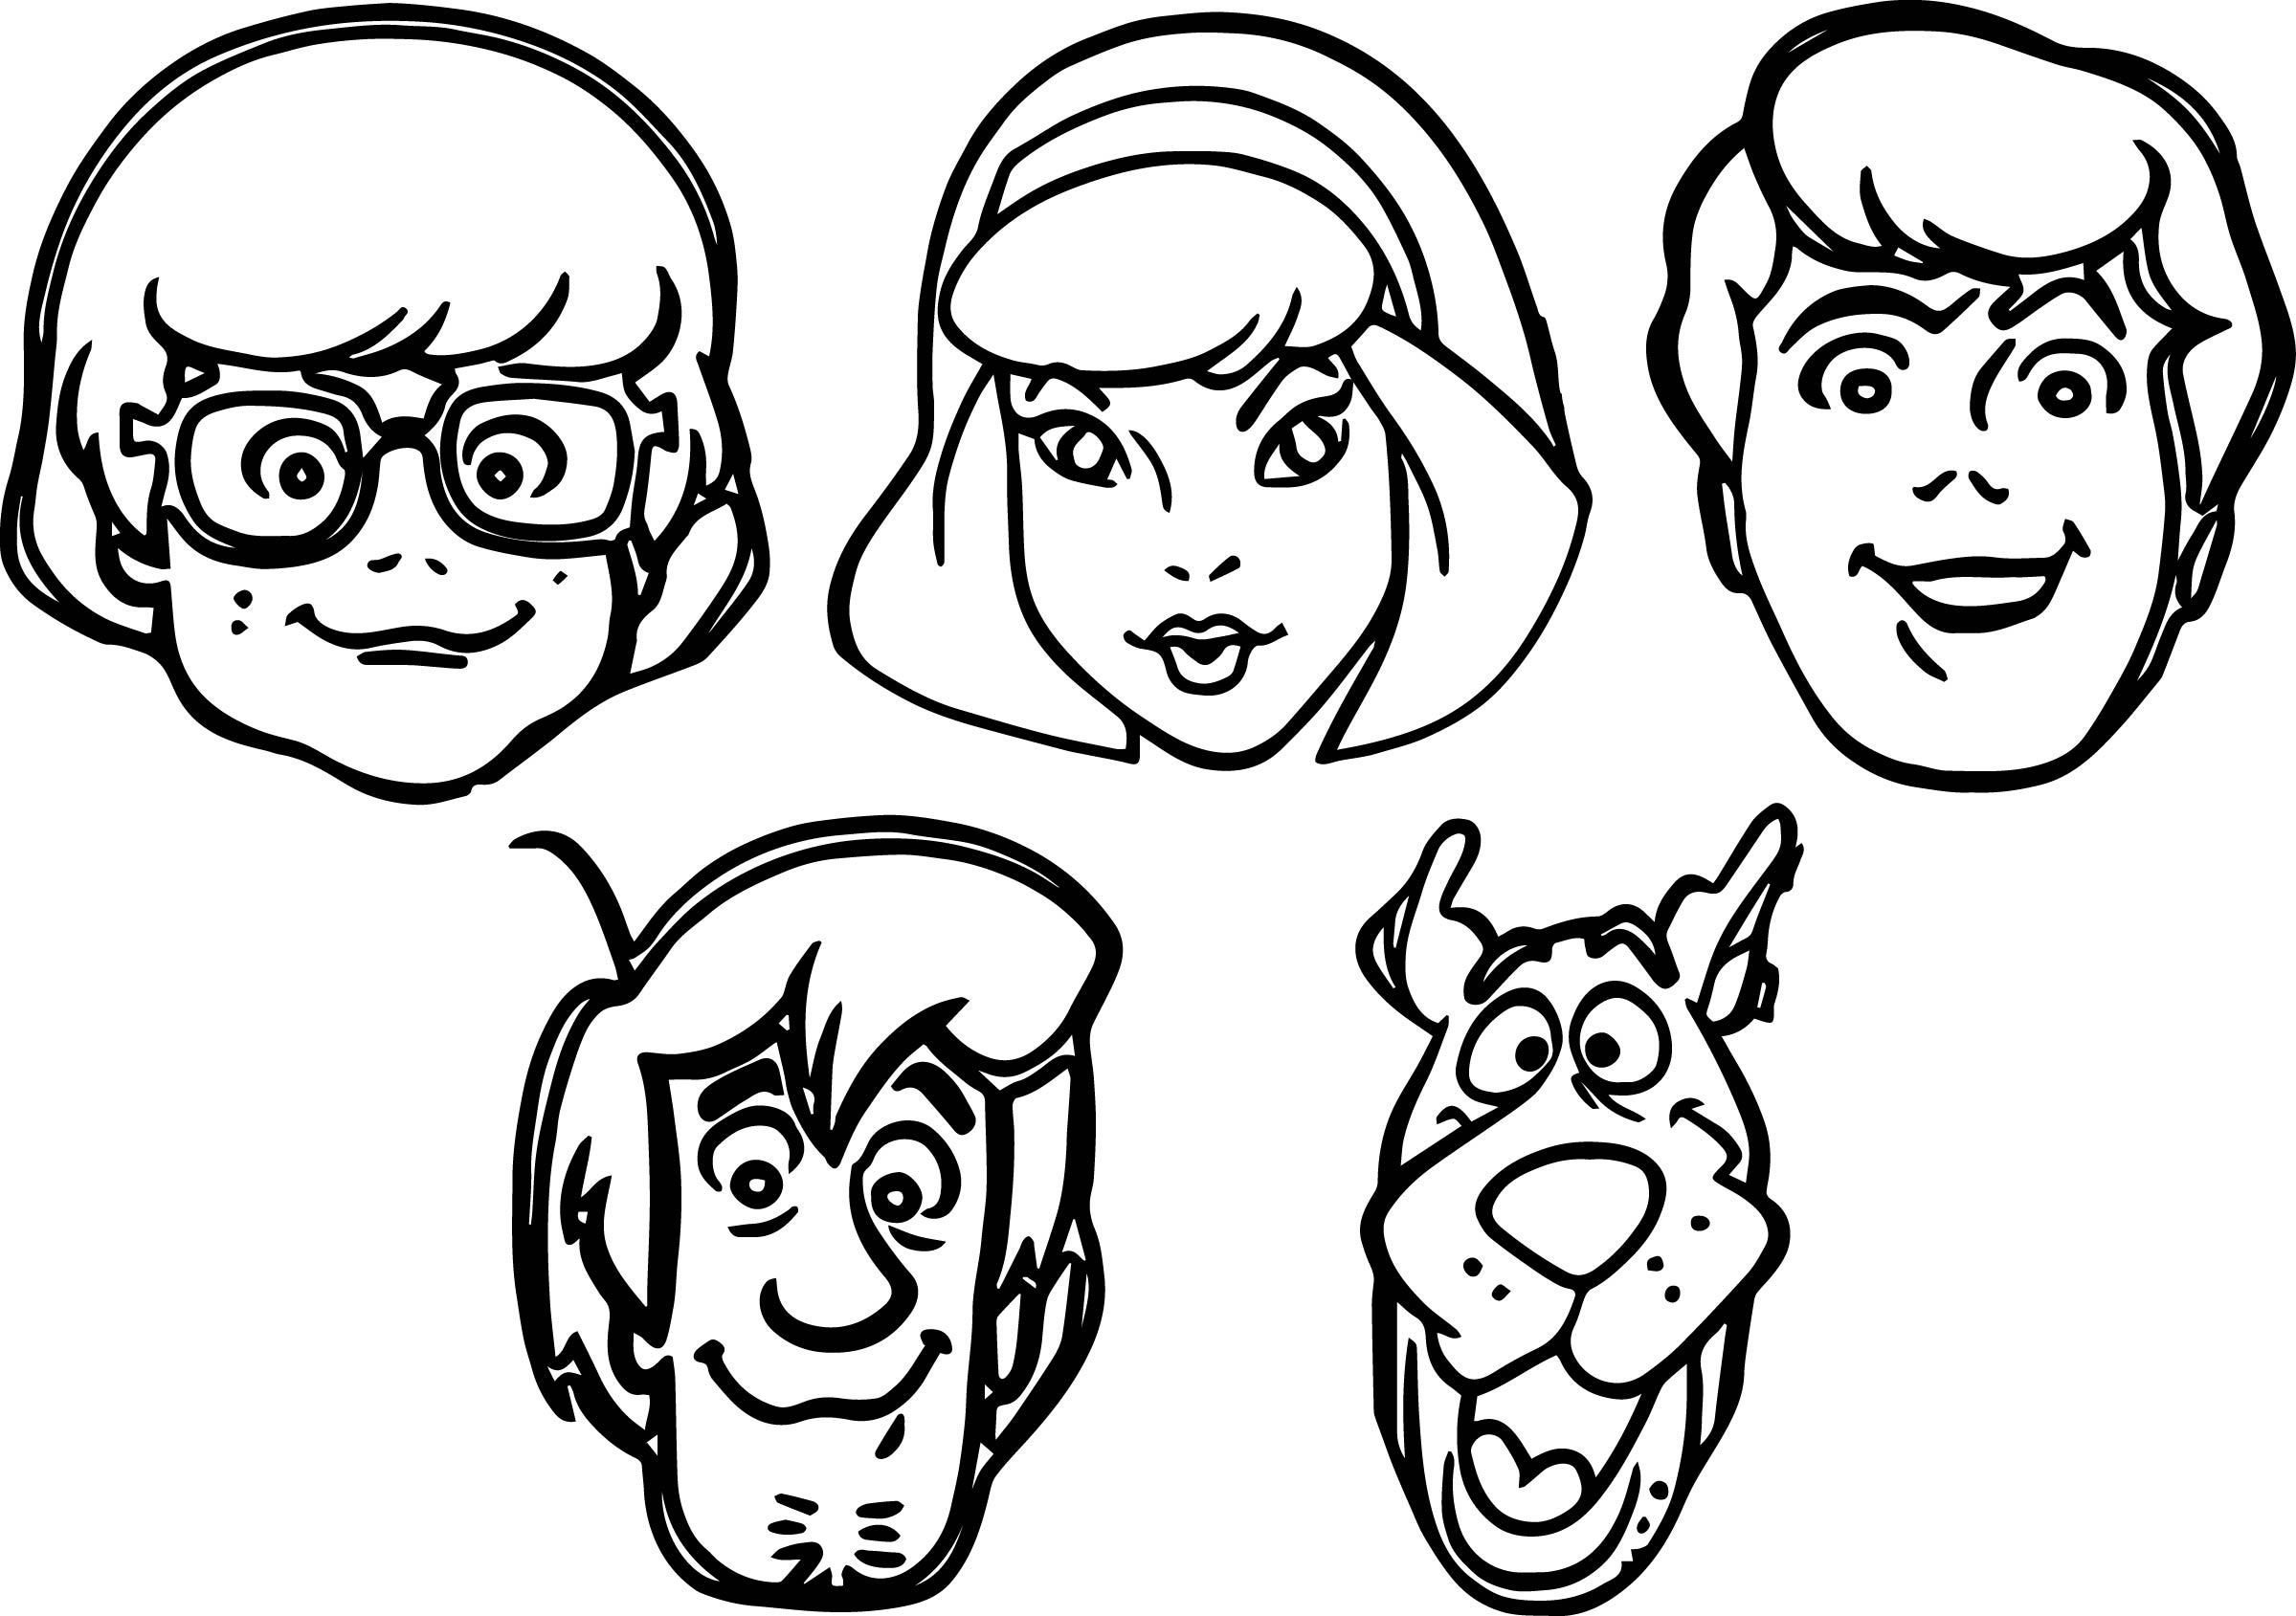 scooby doo smiling scooby doo big face coloring page coloring sheets scooby smiling doo